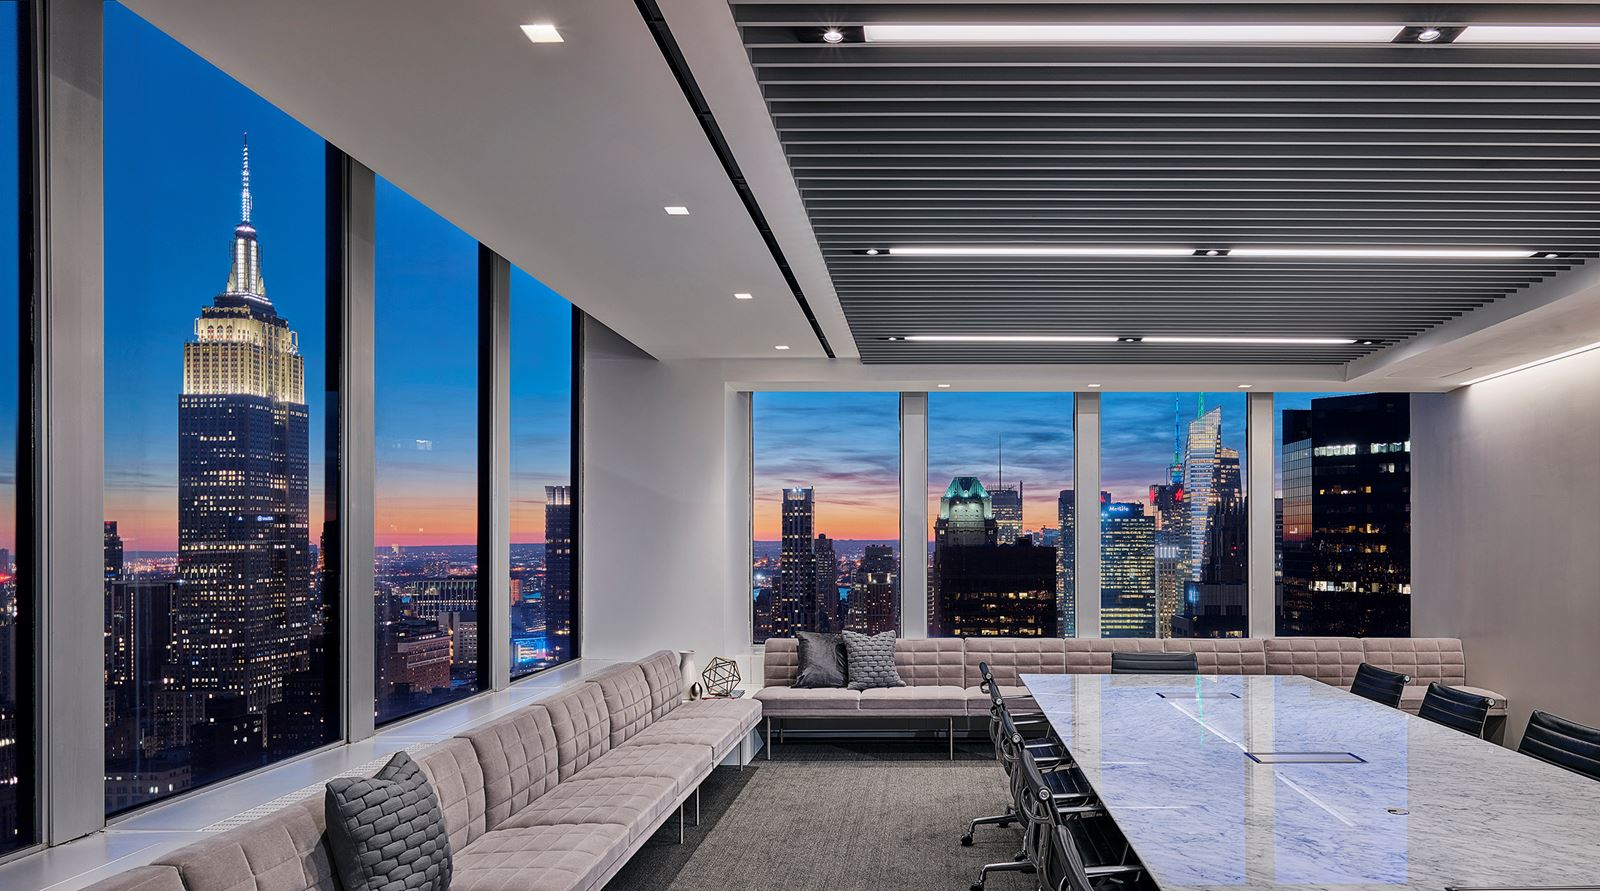 Polsinelliu0027s New York Office Juxtaposes Contemporary Materials, Fabrics And  Textures With Classic City Views To Create A Forward Looking Home For One  Of The ...